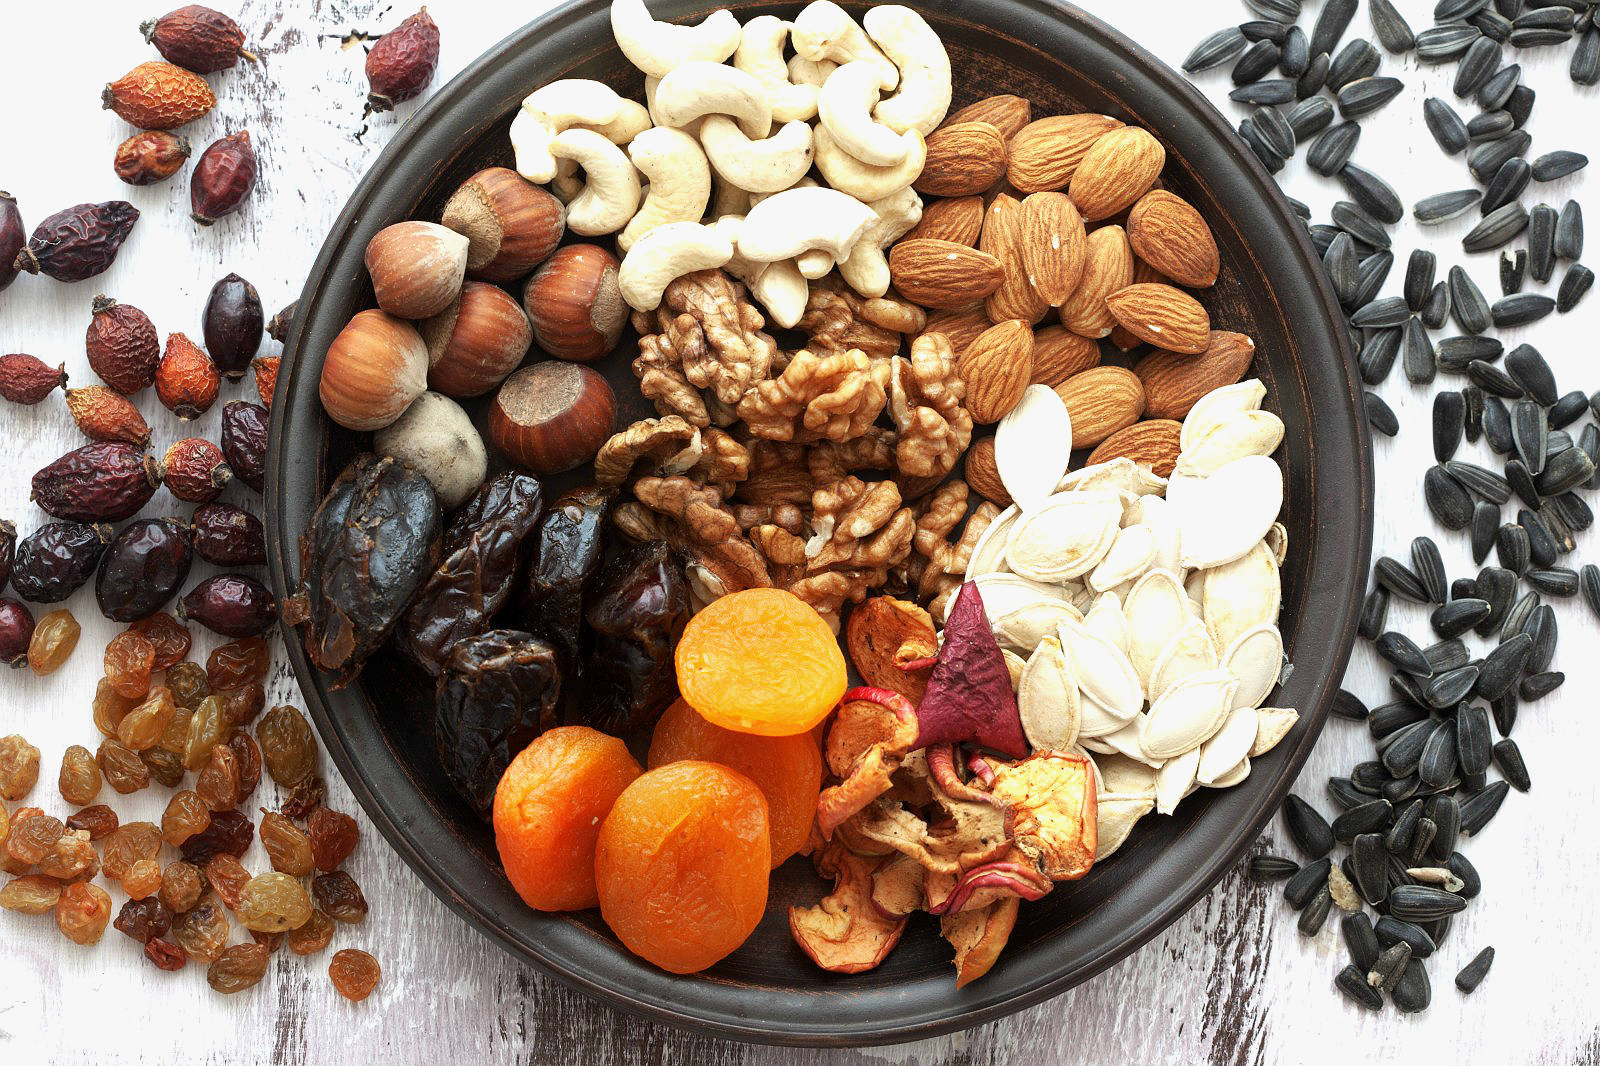 Dried Fruits and Nuts: Are they good for your health?